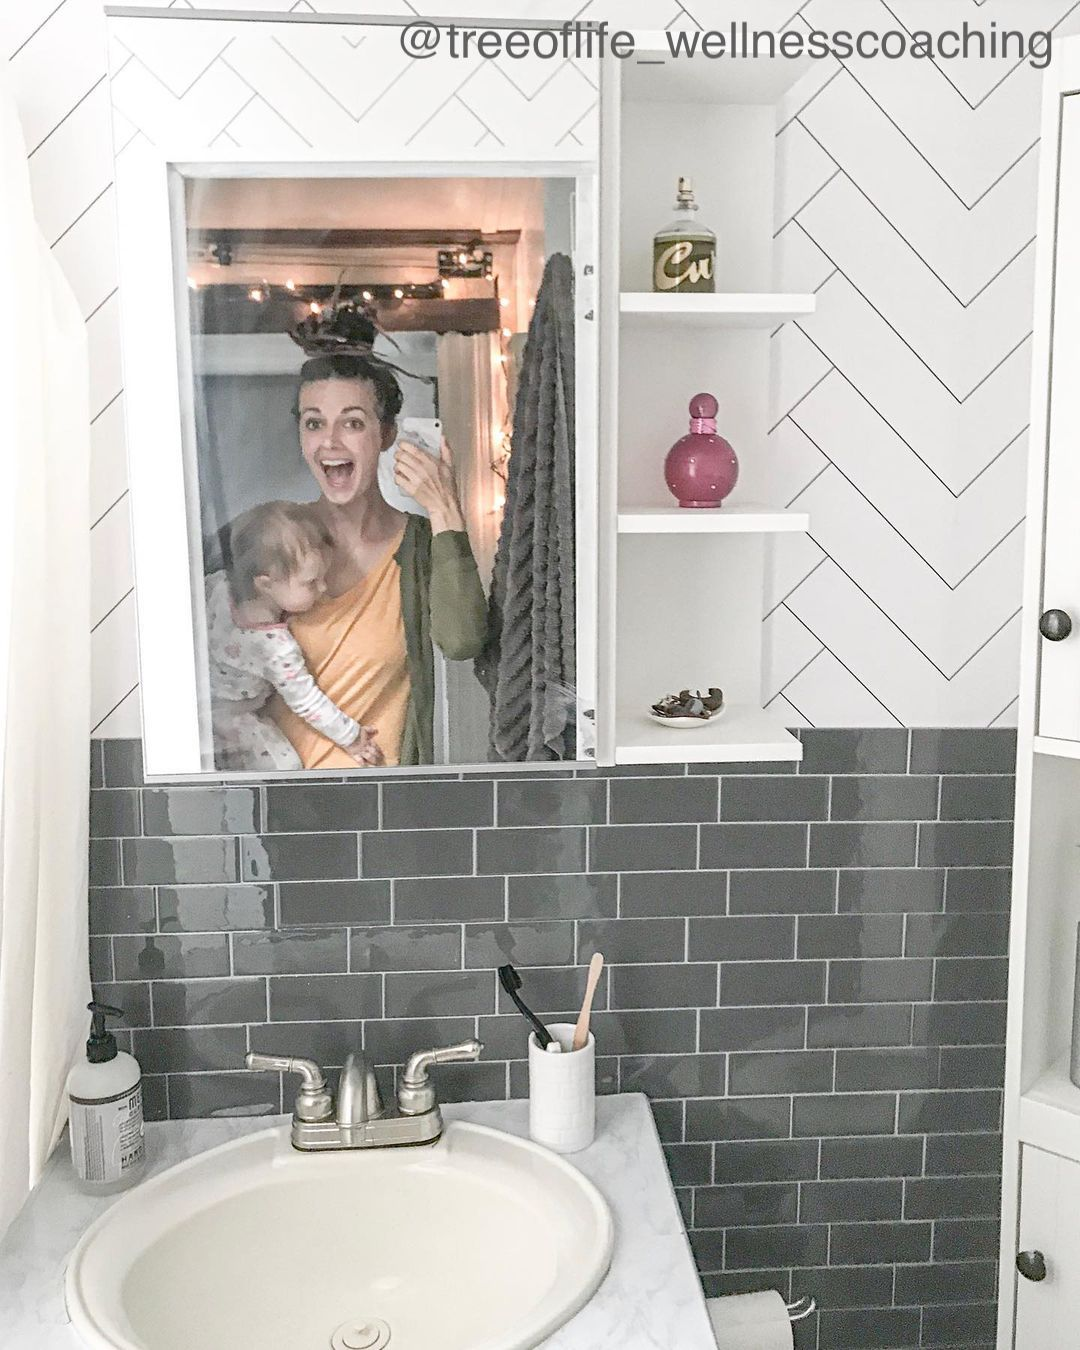 Smiling woman seen holding a baby in the reflection of a small bathrooms mirror